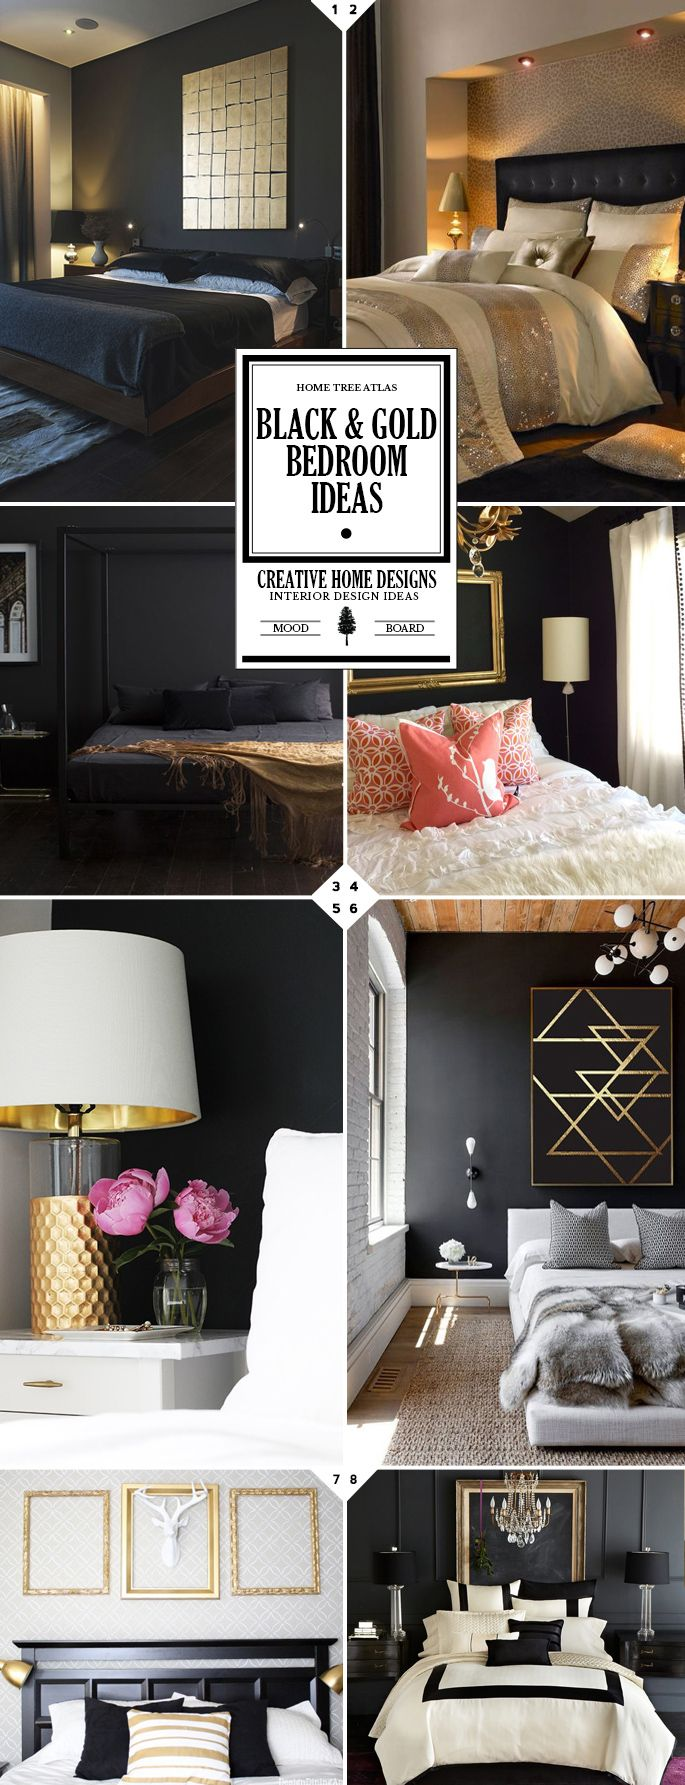 Black and white bedrooms with a splash of color - A Touch Of Luxury Black And Gold Bedroom Ideas